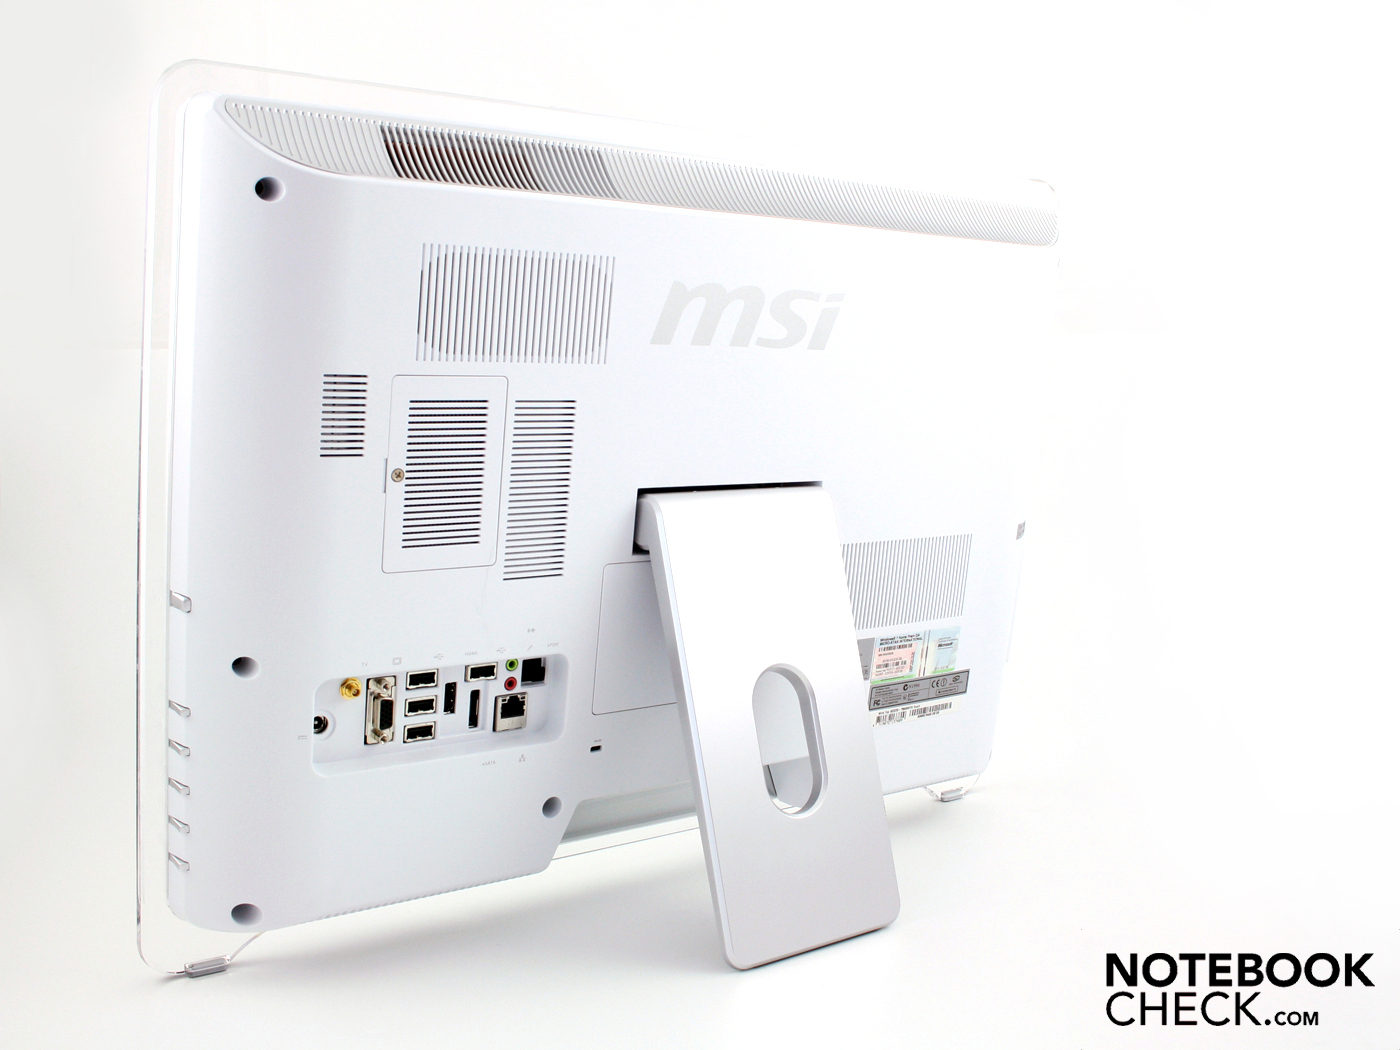 MSI Wind Top AE2200 Pro WLAN New